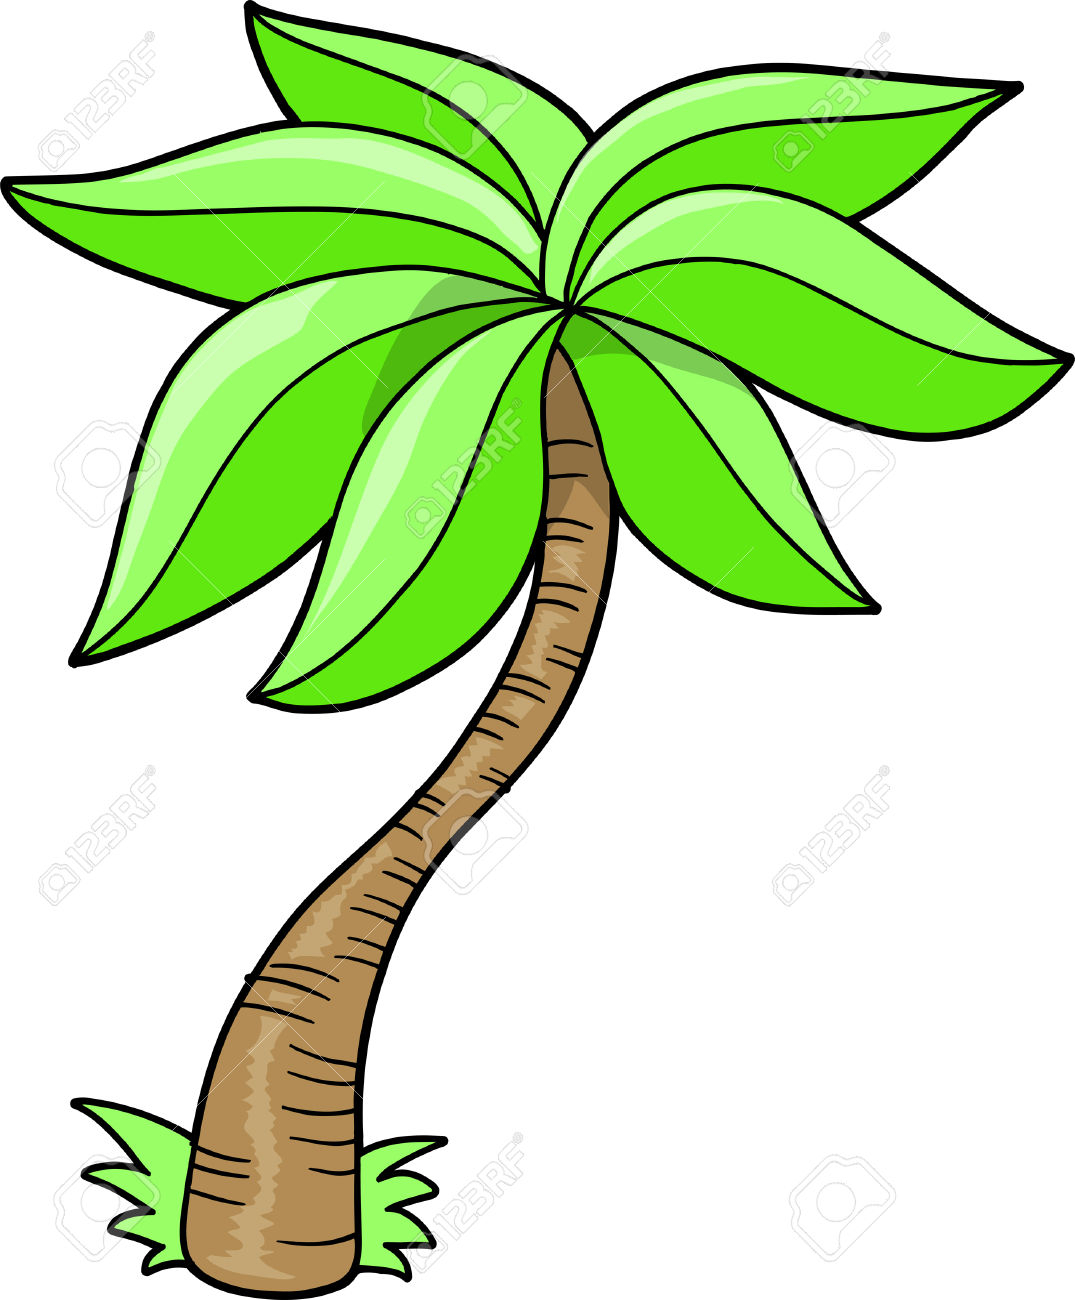 Palm Tree Cartoon Drawing at GetDrawings.com | Free for personal use ...